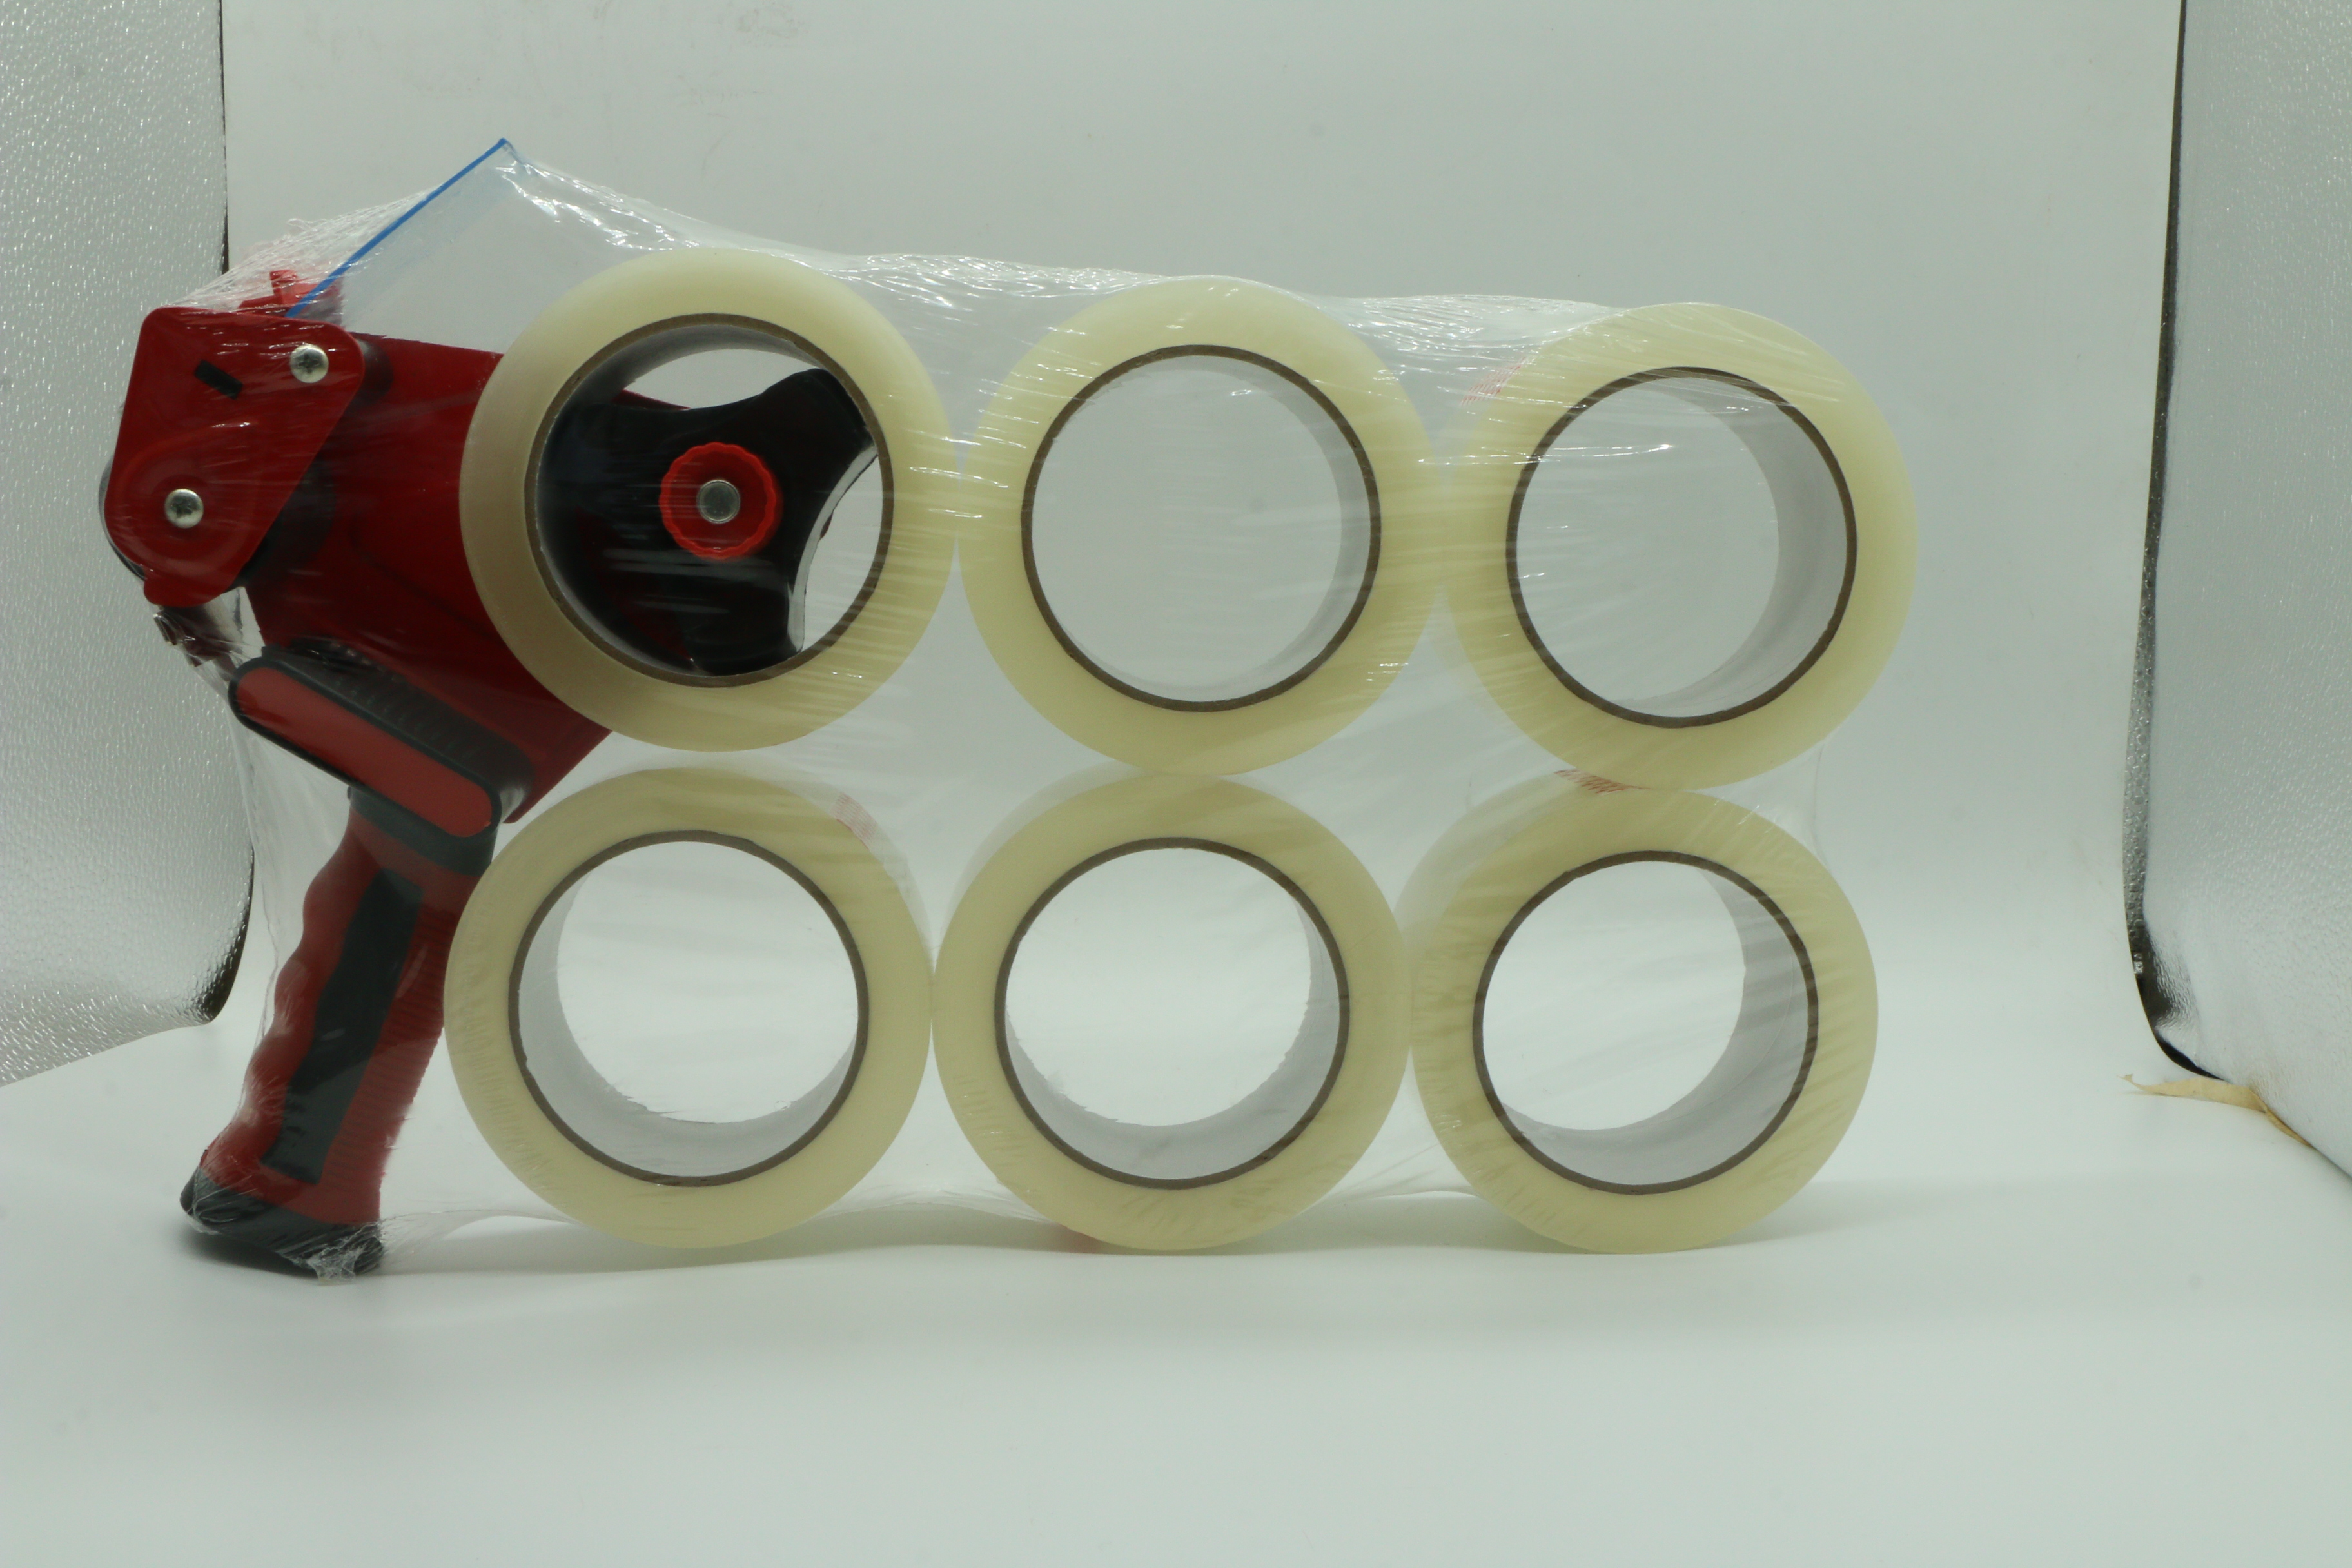 Clear packaging tape with red tape gun dispenser